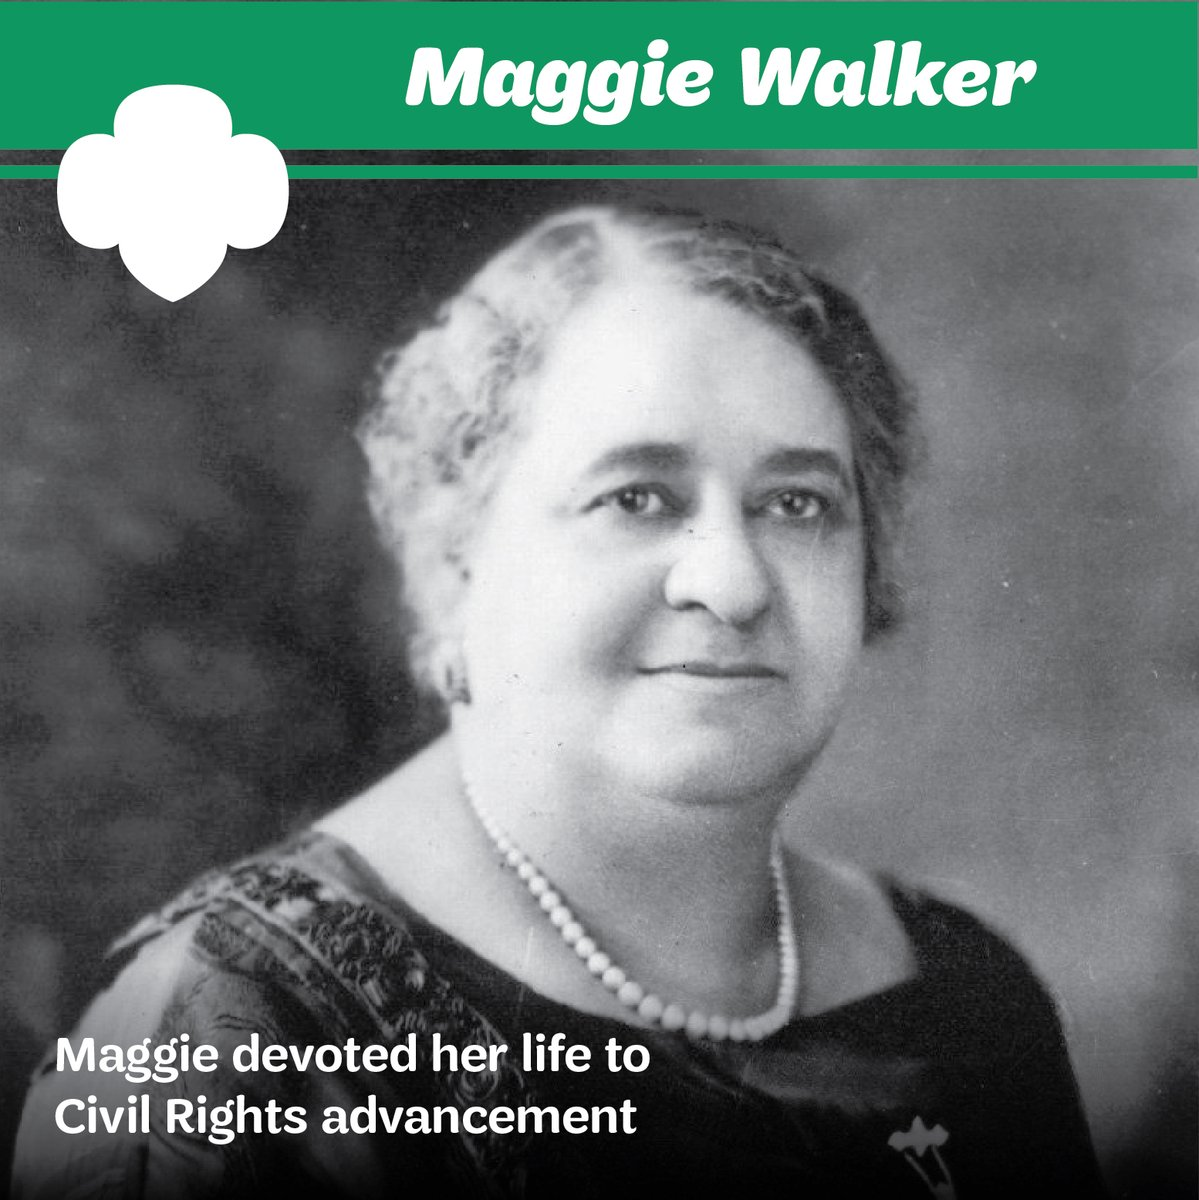 Maggie Walker devoted her life to civil rights advancement for Jim Crow-era African Americans and women. Maggie was instrumental in the creation of the first African-American troop south of the Mason-Dixon Line. Today, we honor her enduring legacy of courage, and determination.pic.twitter.com/LMmPOAGw87